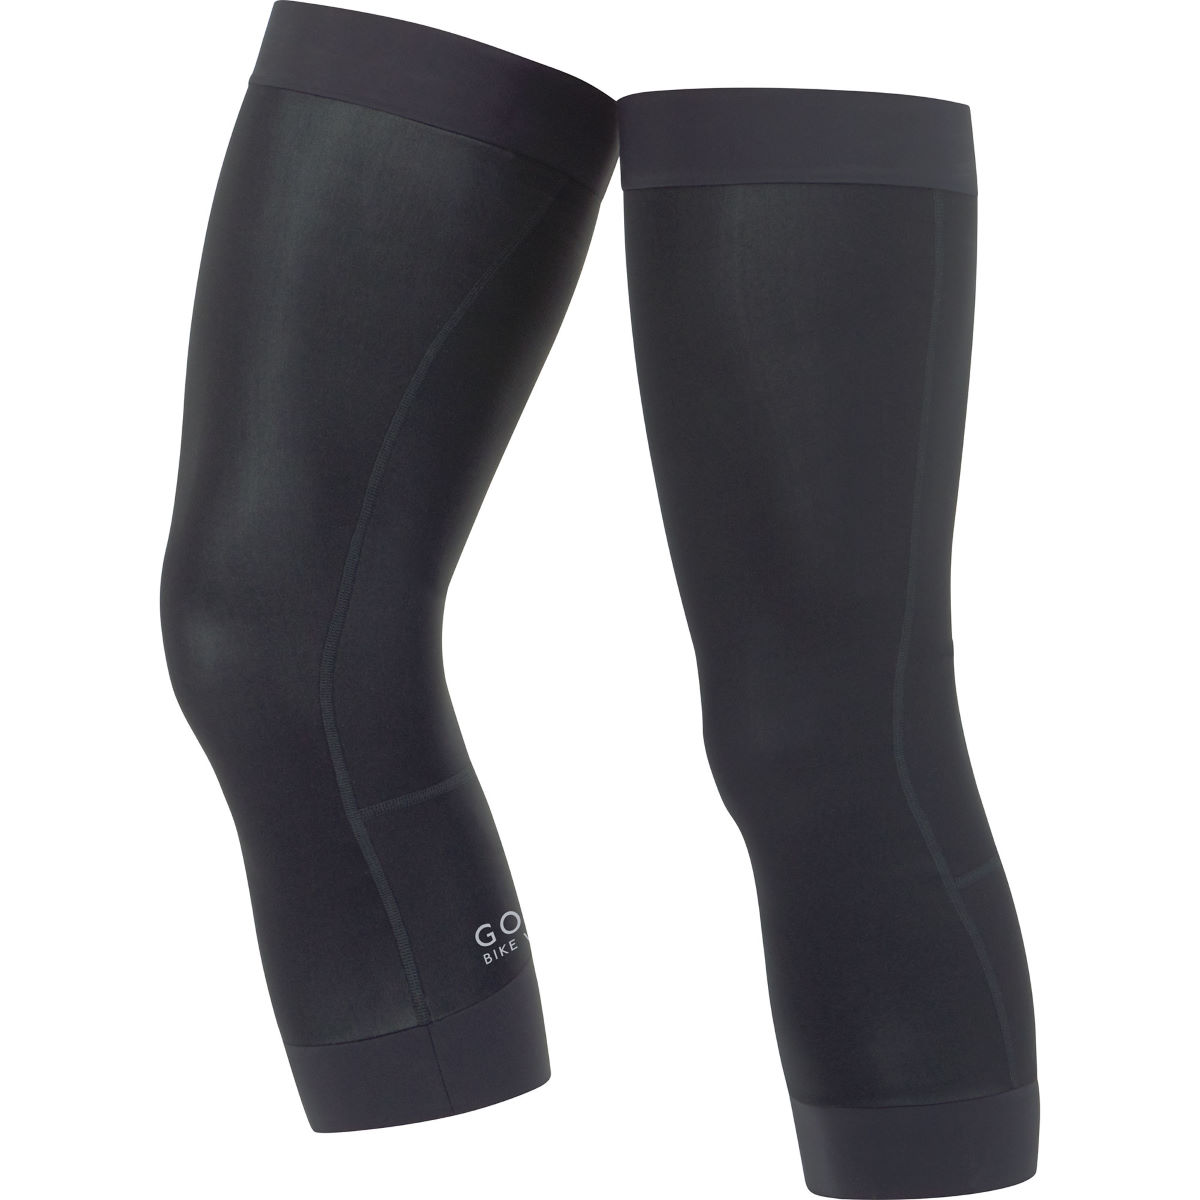 Gore Bike Wear Universal Knee Warmers   Arm & Leg Warmers